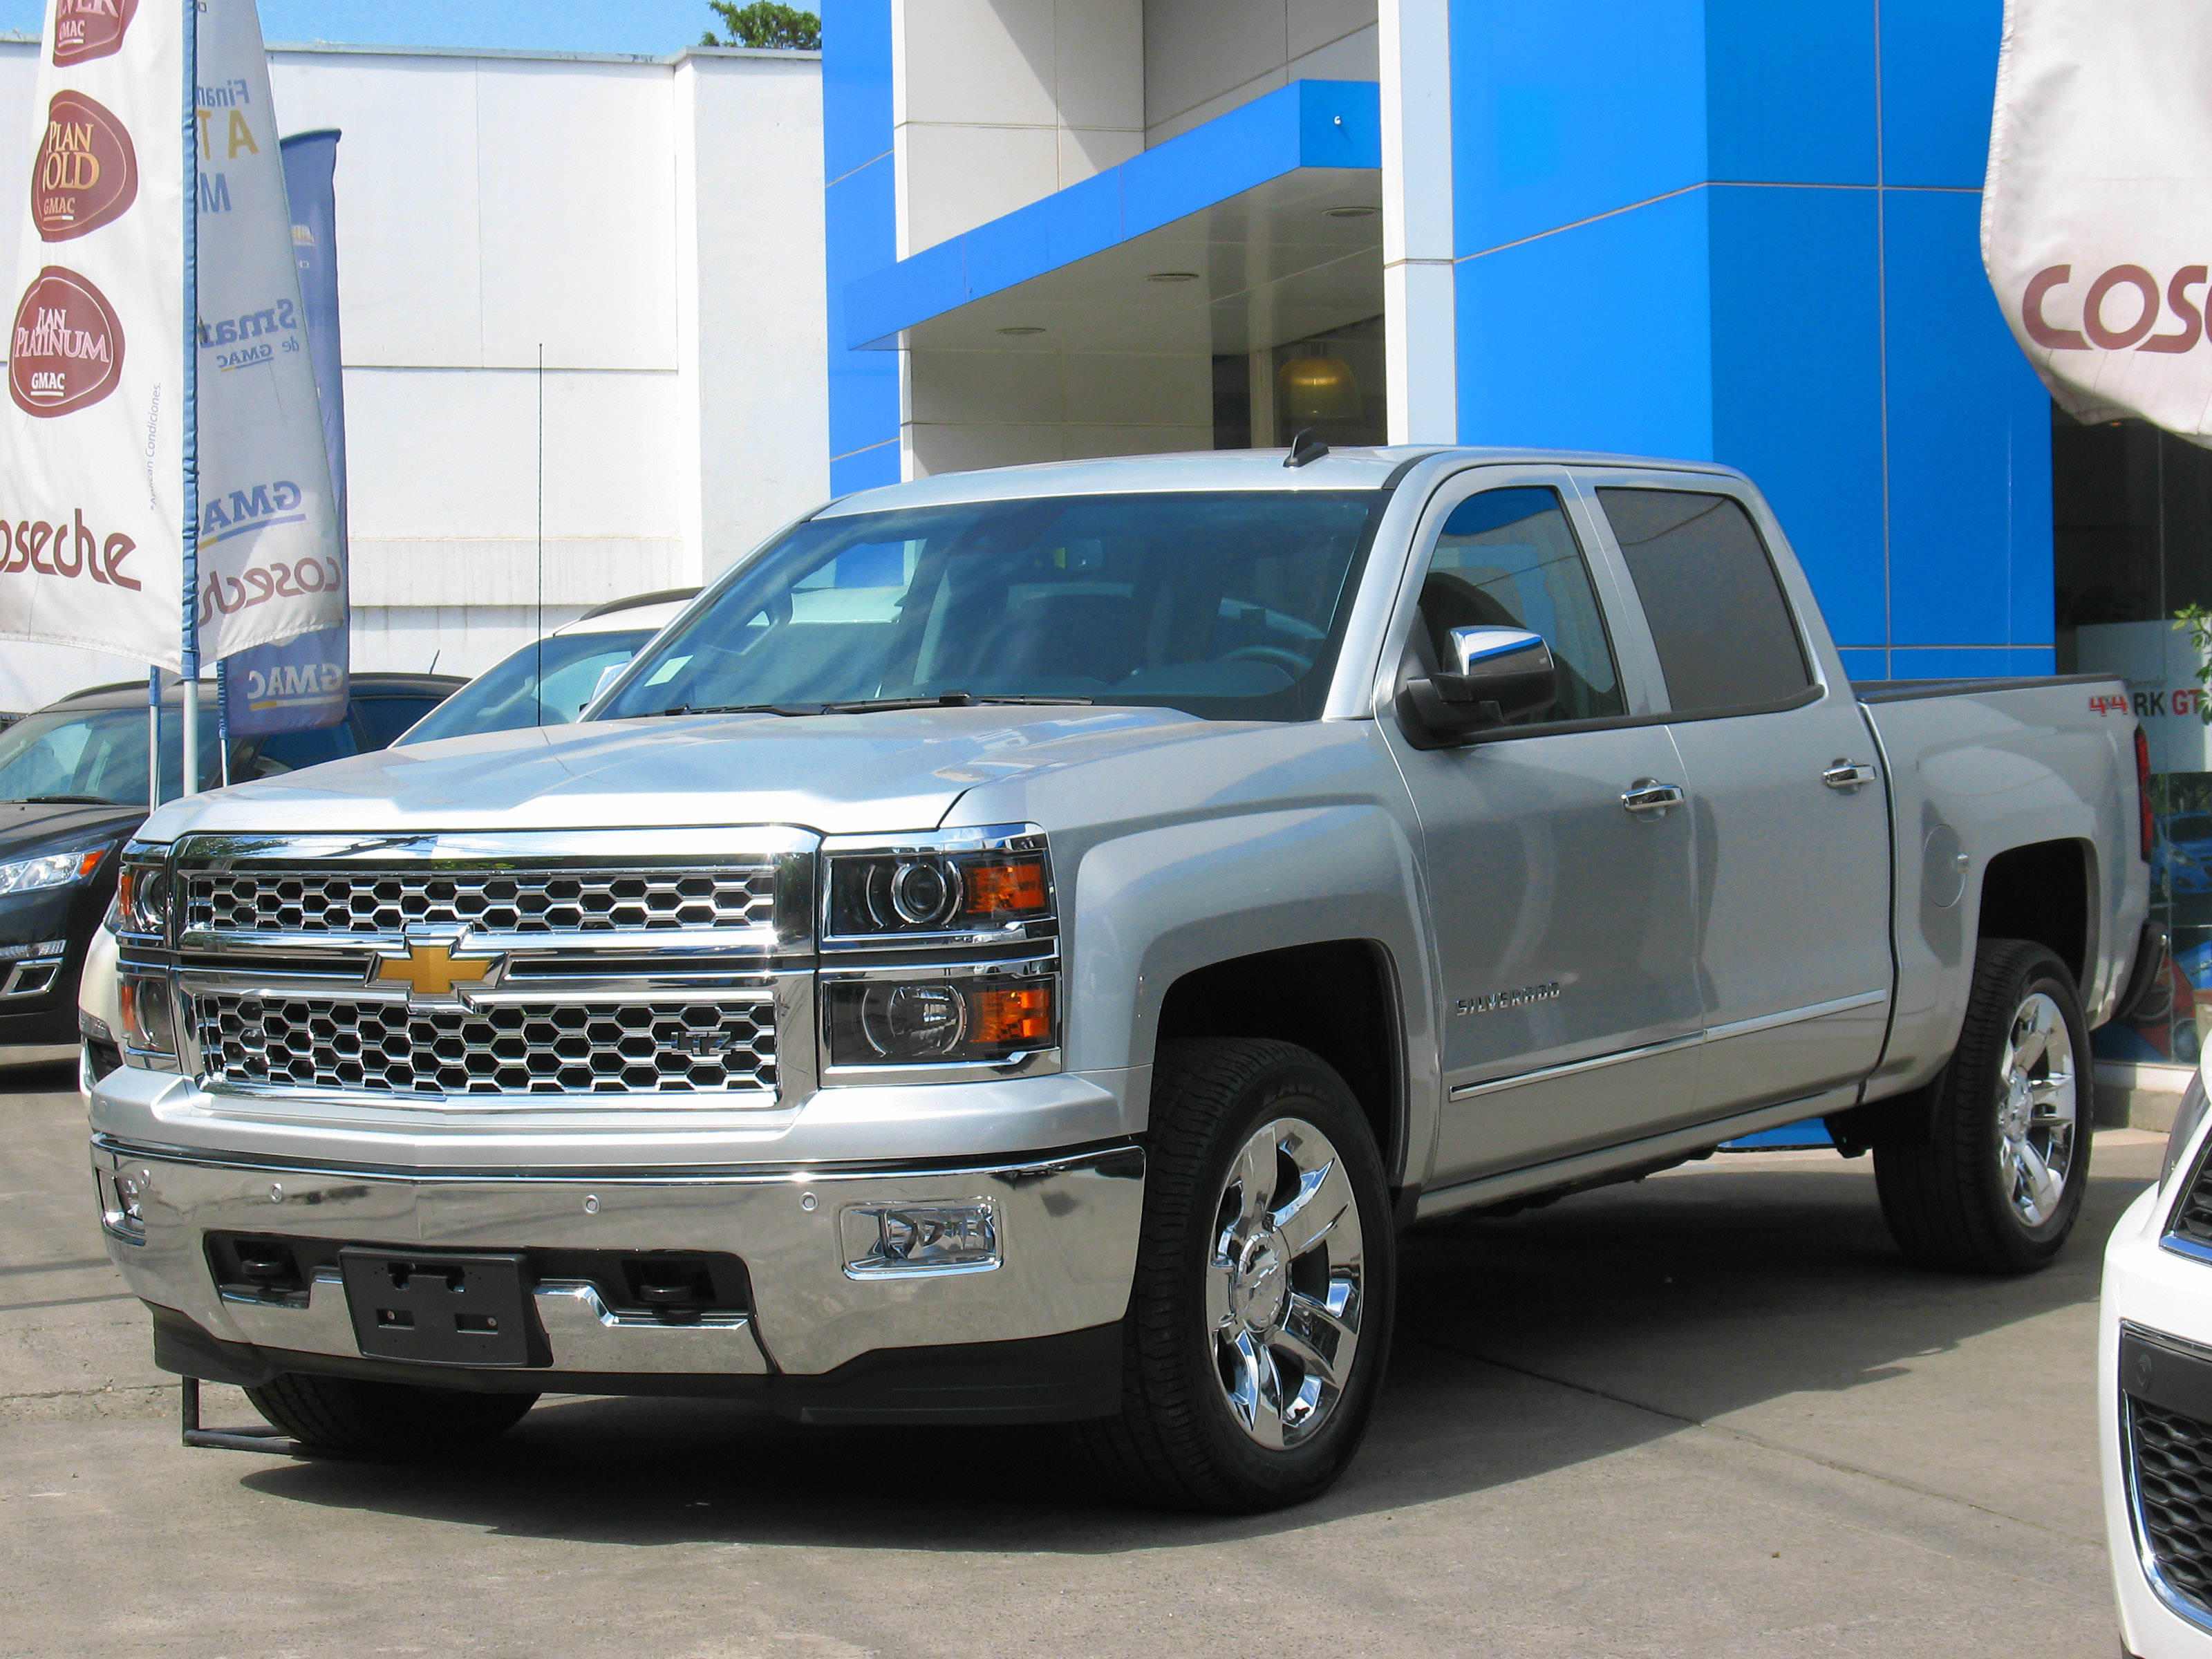 chevrolet silverado. Black Bedroom Furniture Sets. Home Design Ideas